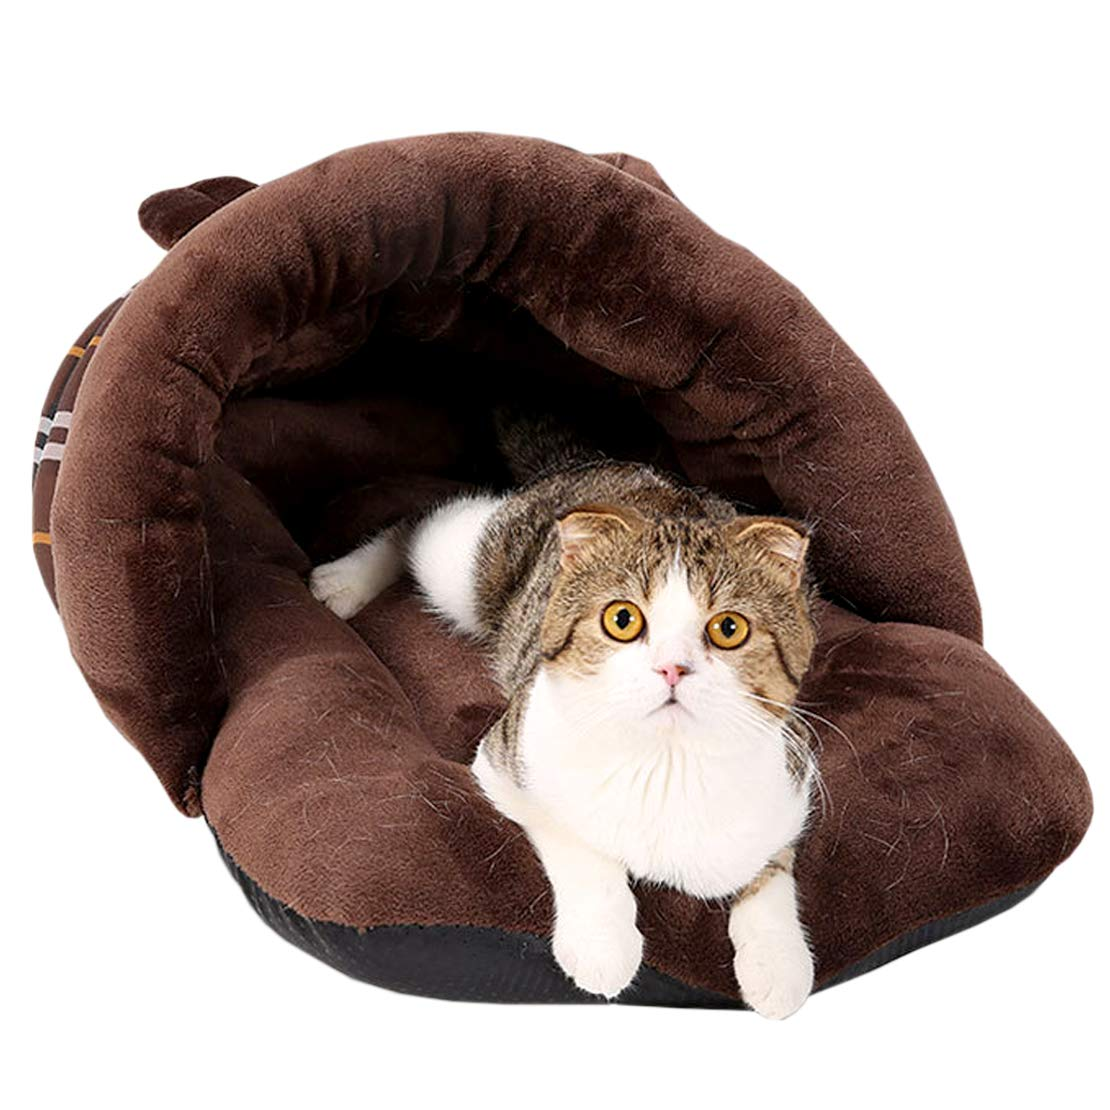 VeMee Plush Cat Sleep Bag Cozy Pet Cave Bed Covered Pet Beds Cave for Cat Small Dogs and Puppies